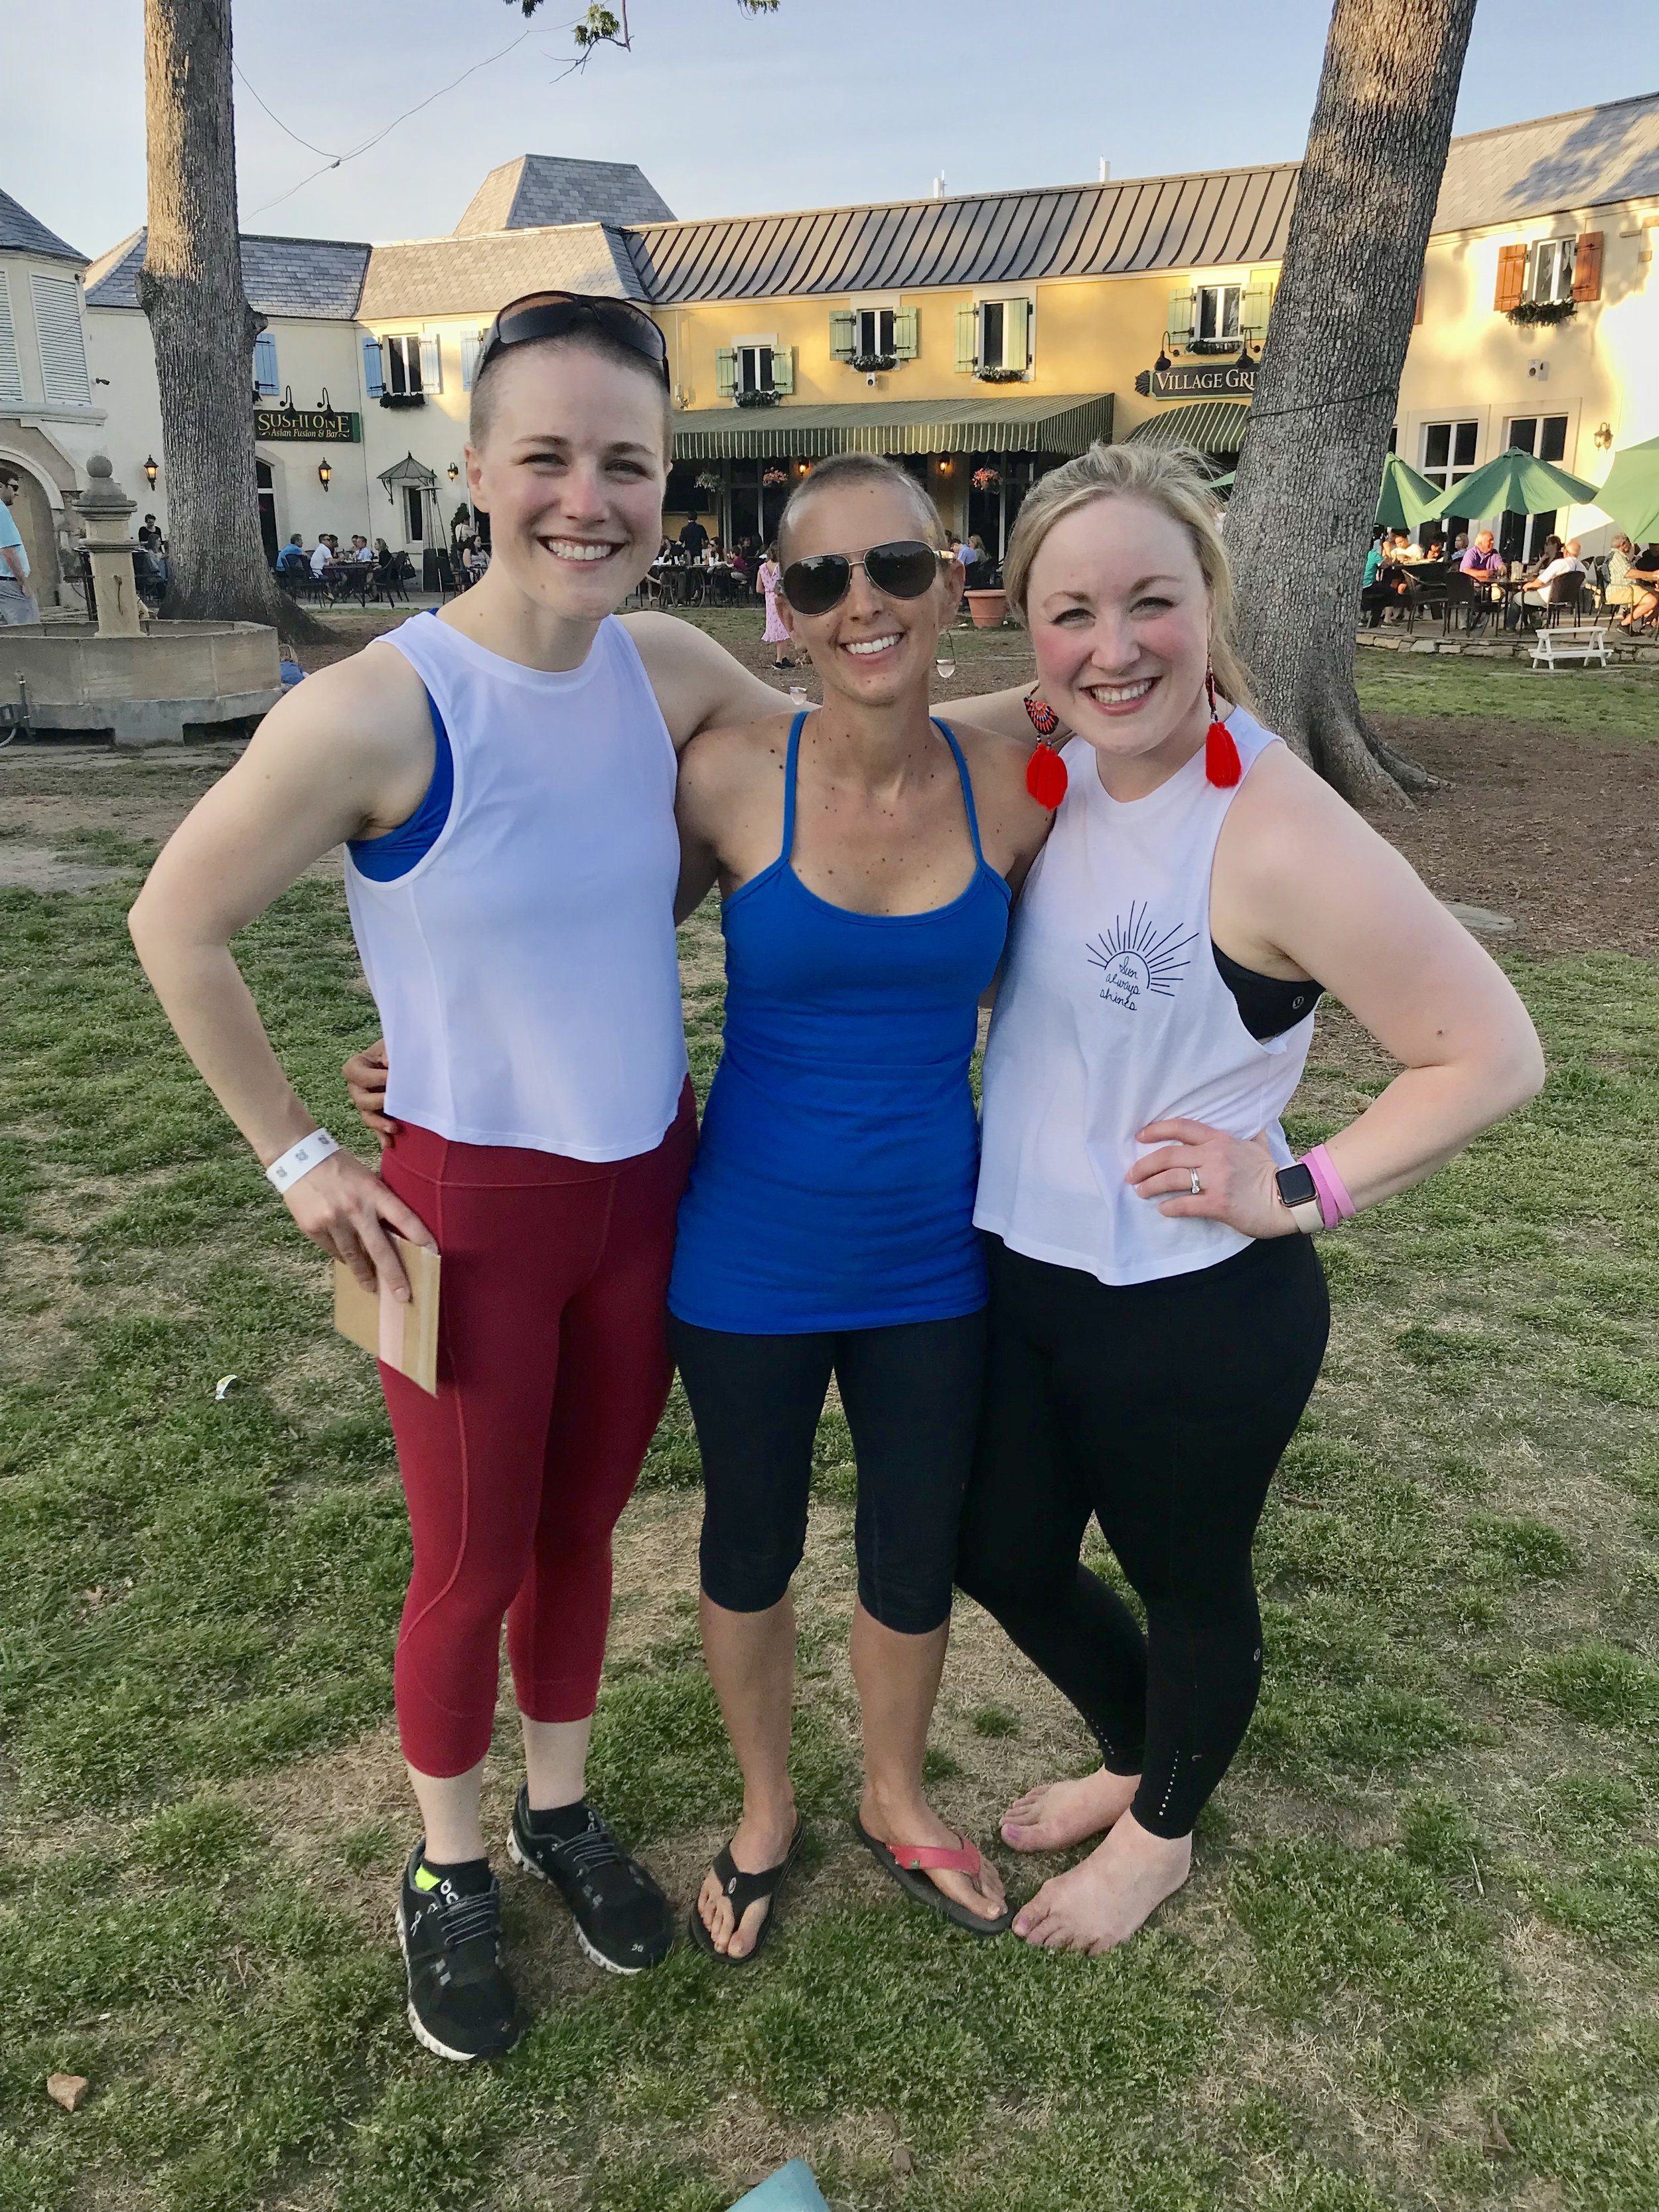 Tracy and I met at a yoga studio and hadn't seen each other in years until we both learned we were going through breast cancer. She's ahead of me in the process and has provided so much support as I start my treatments.